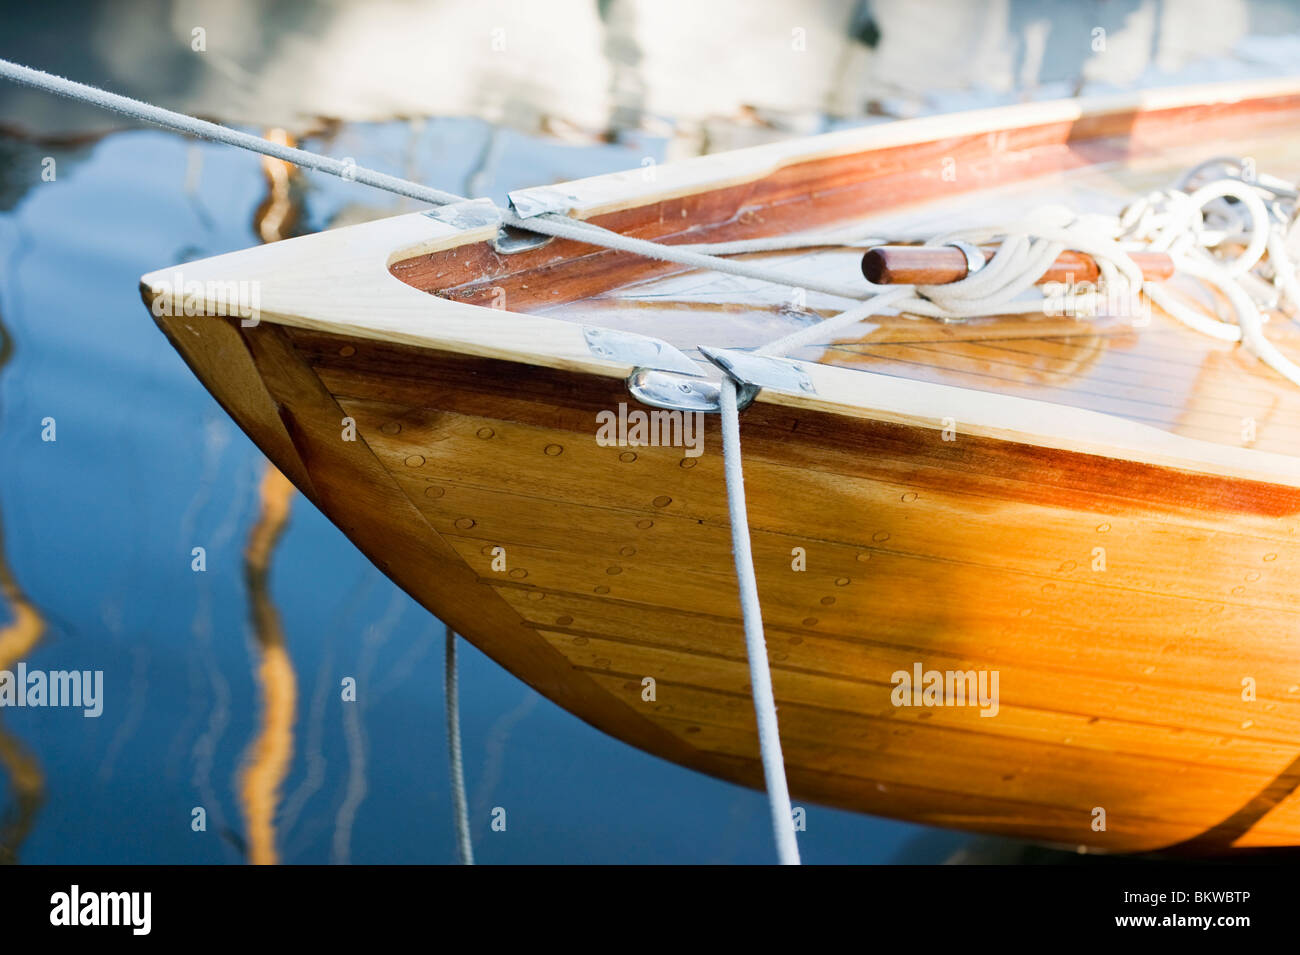 Closeup on tied up boat - Stock Image